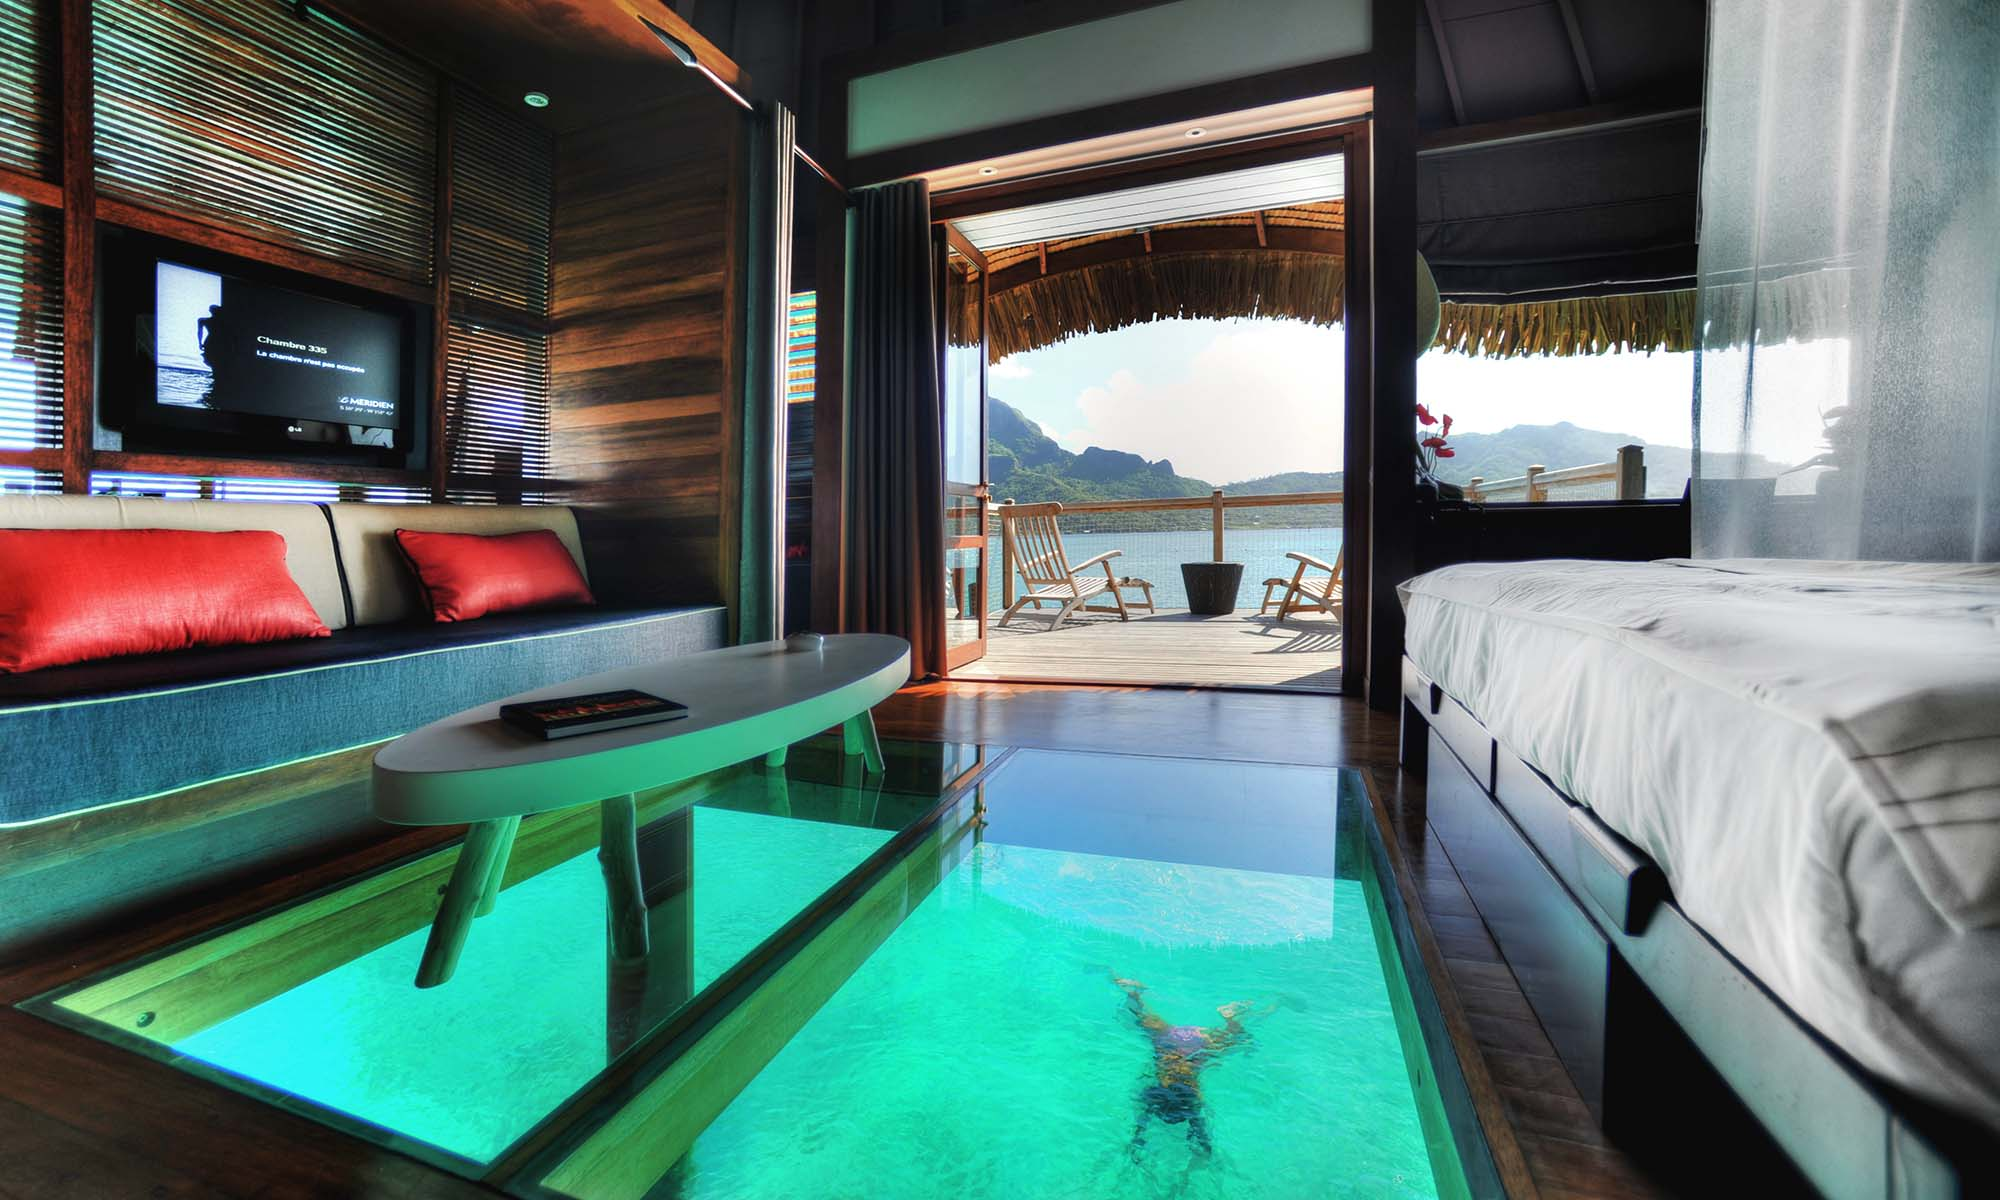 Le Meridien is Home to the Largest Glass Floor Panels in all of French Polynesia